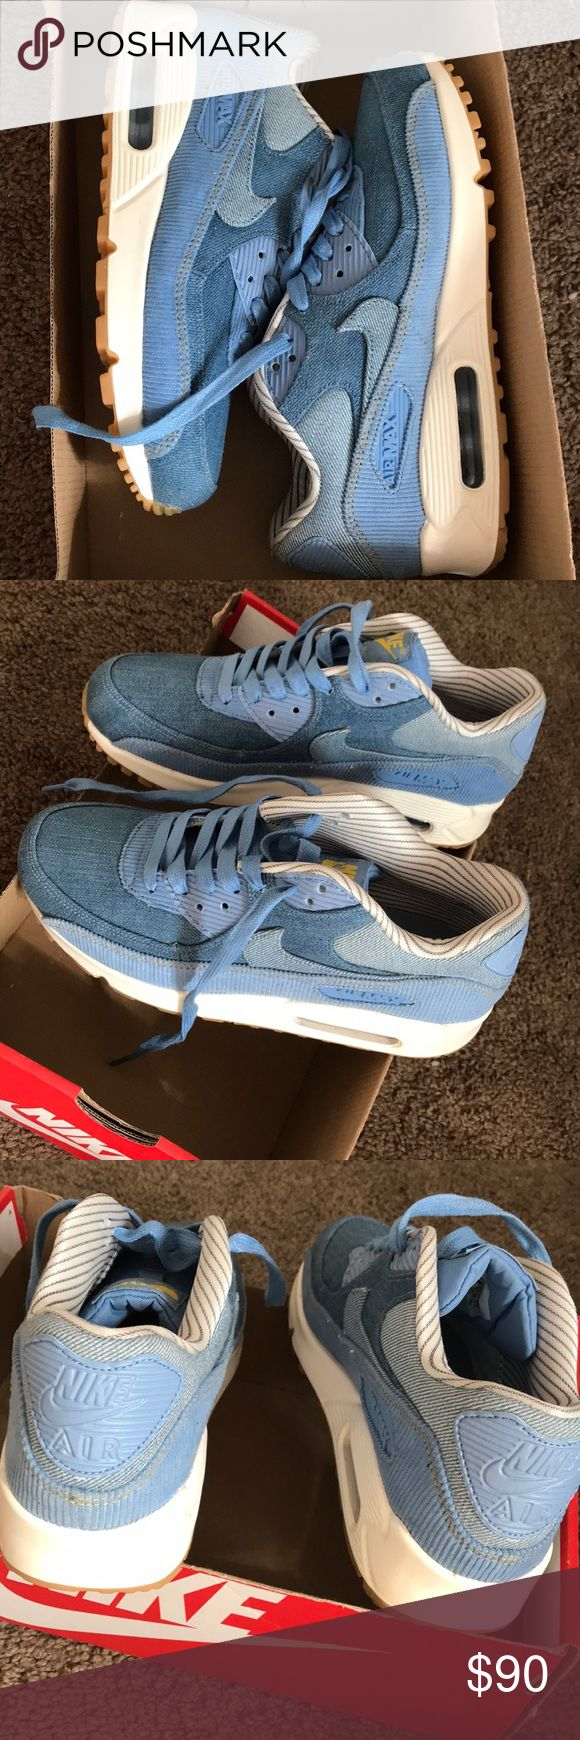 Nike Air Max Brand new never worn denim Air Max! They run true to size Nike Shoes Sneakers